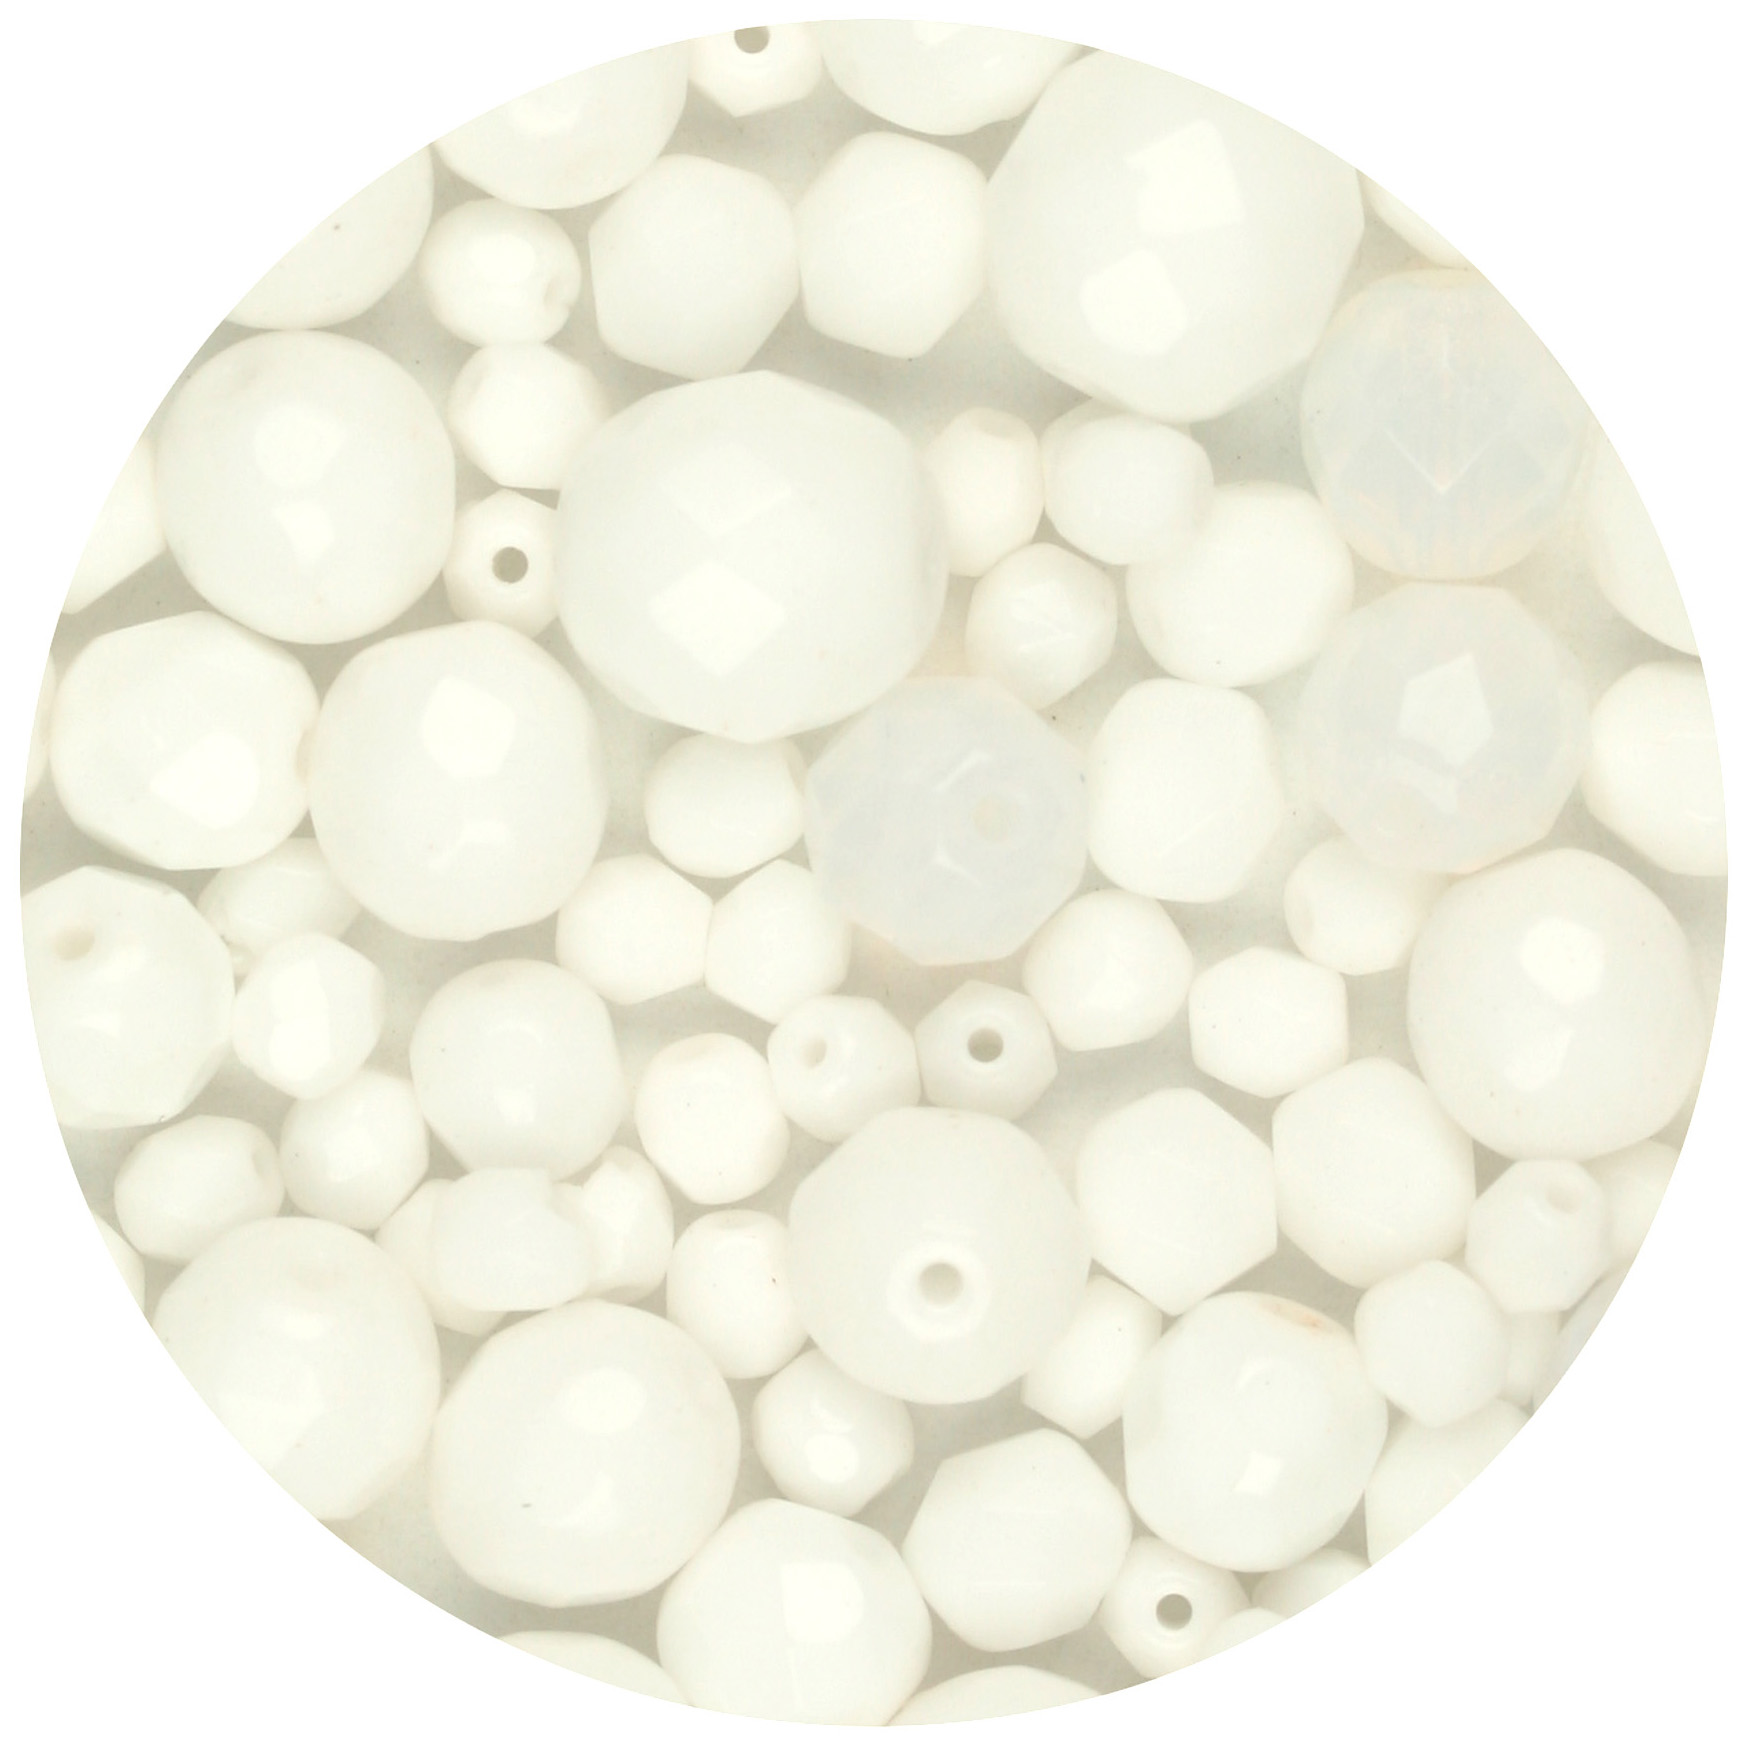 cfm beads the metals gemstones individual precious pearls pieces for prom jewelry to that about memory are one bride or findings a used crystals kind wholesale and flower create maa mass bridal of semi